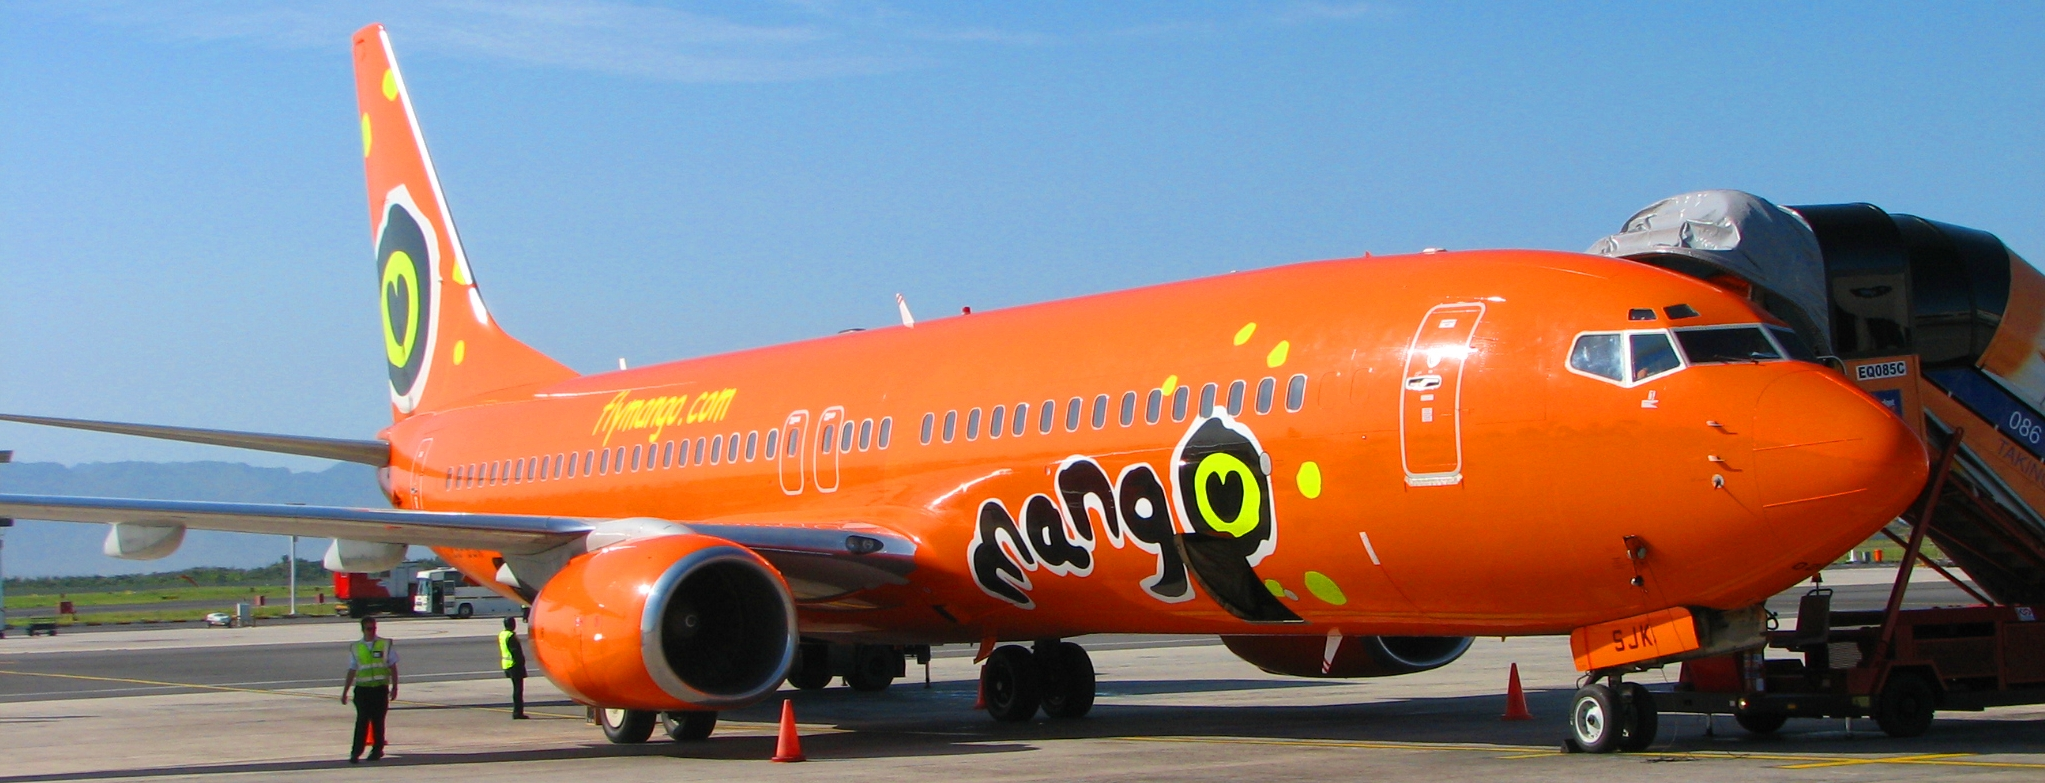 Mango From Cape Town To Johannesburg